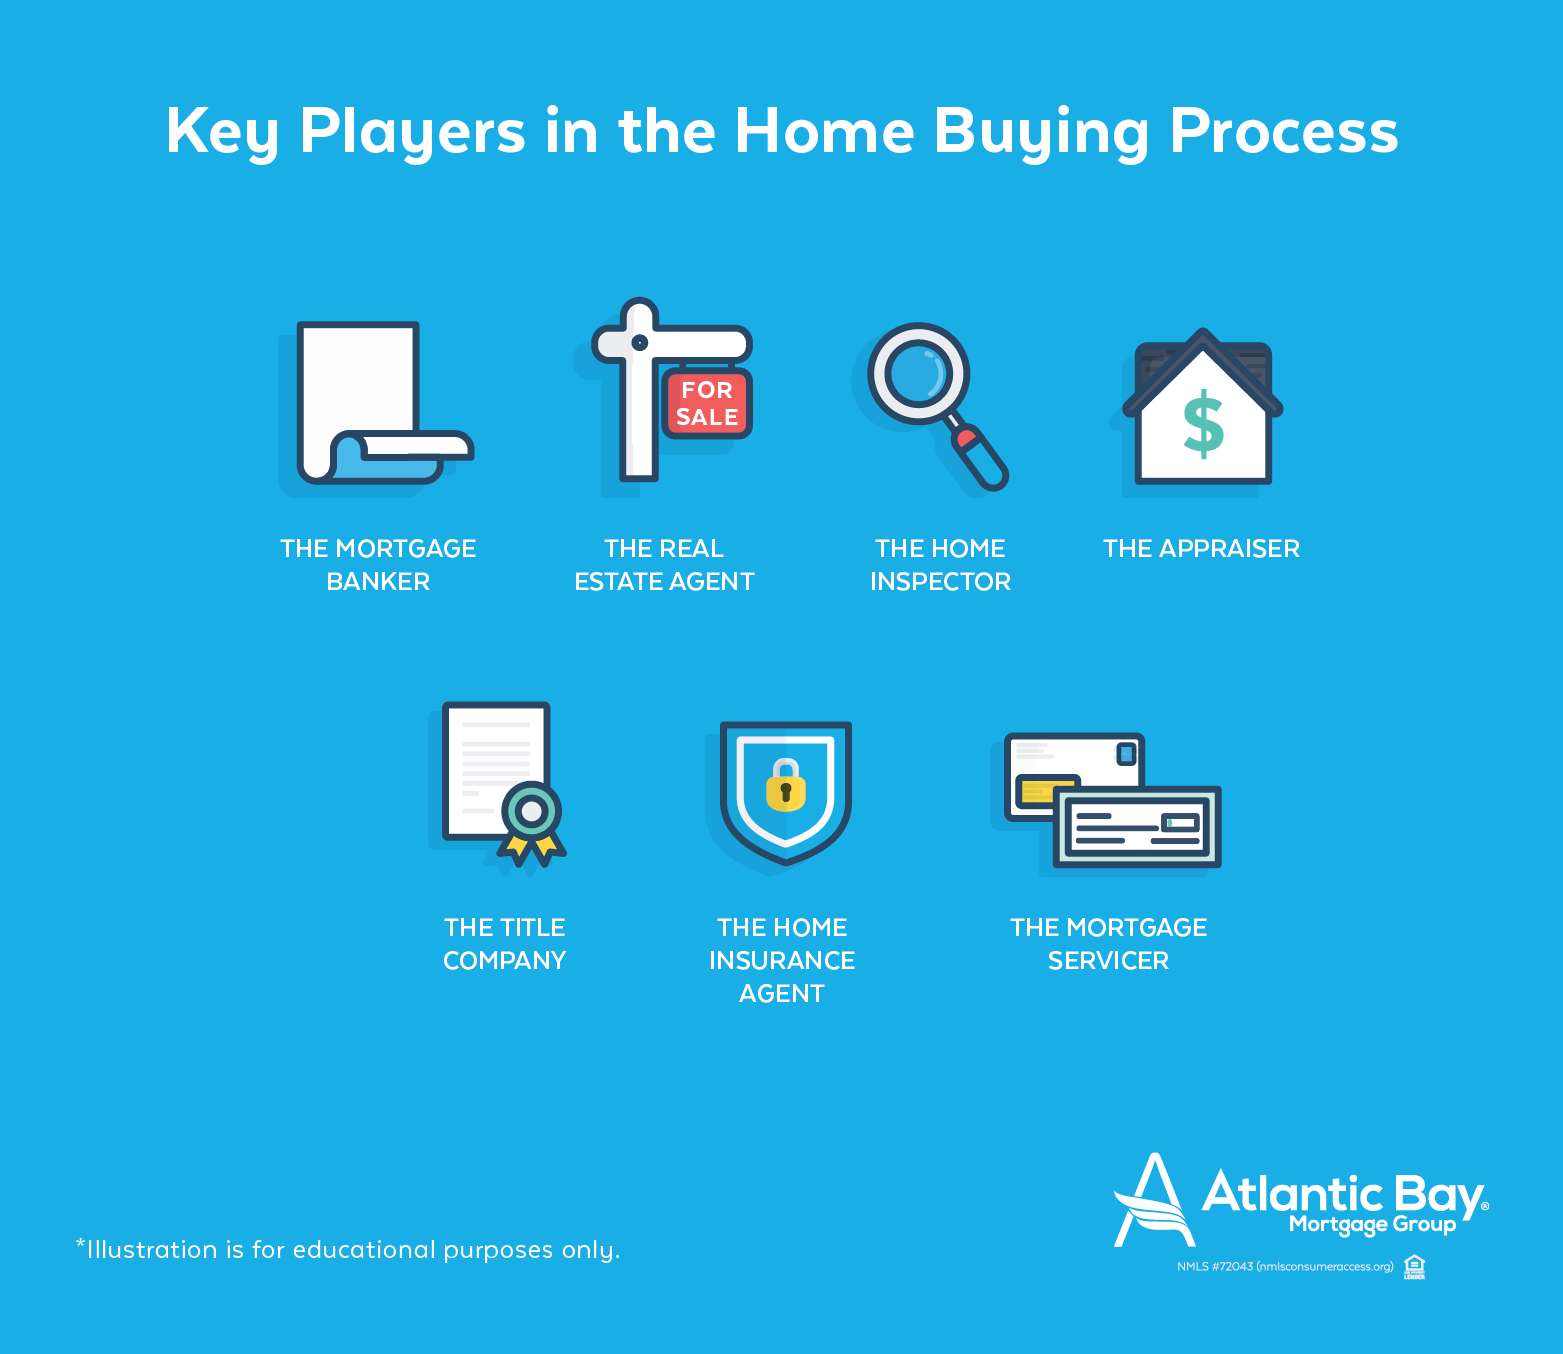 Key Players in the Home Buying Process